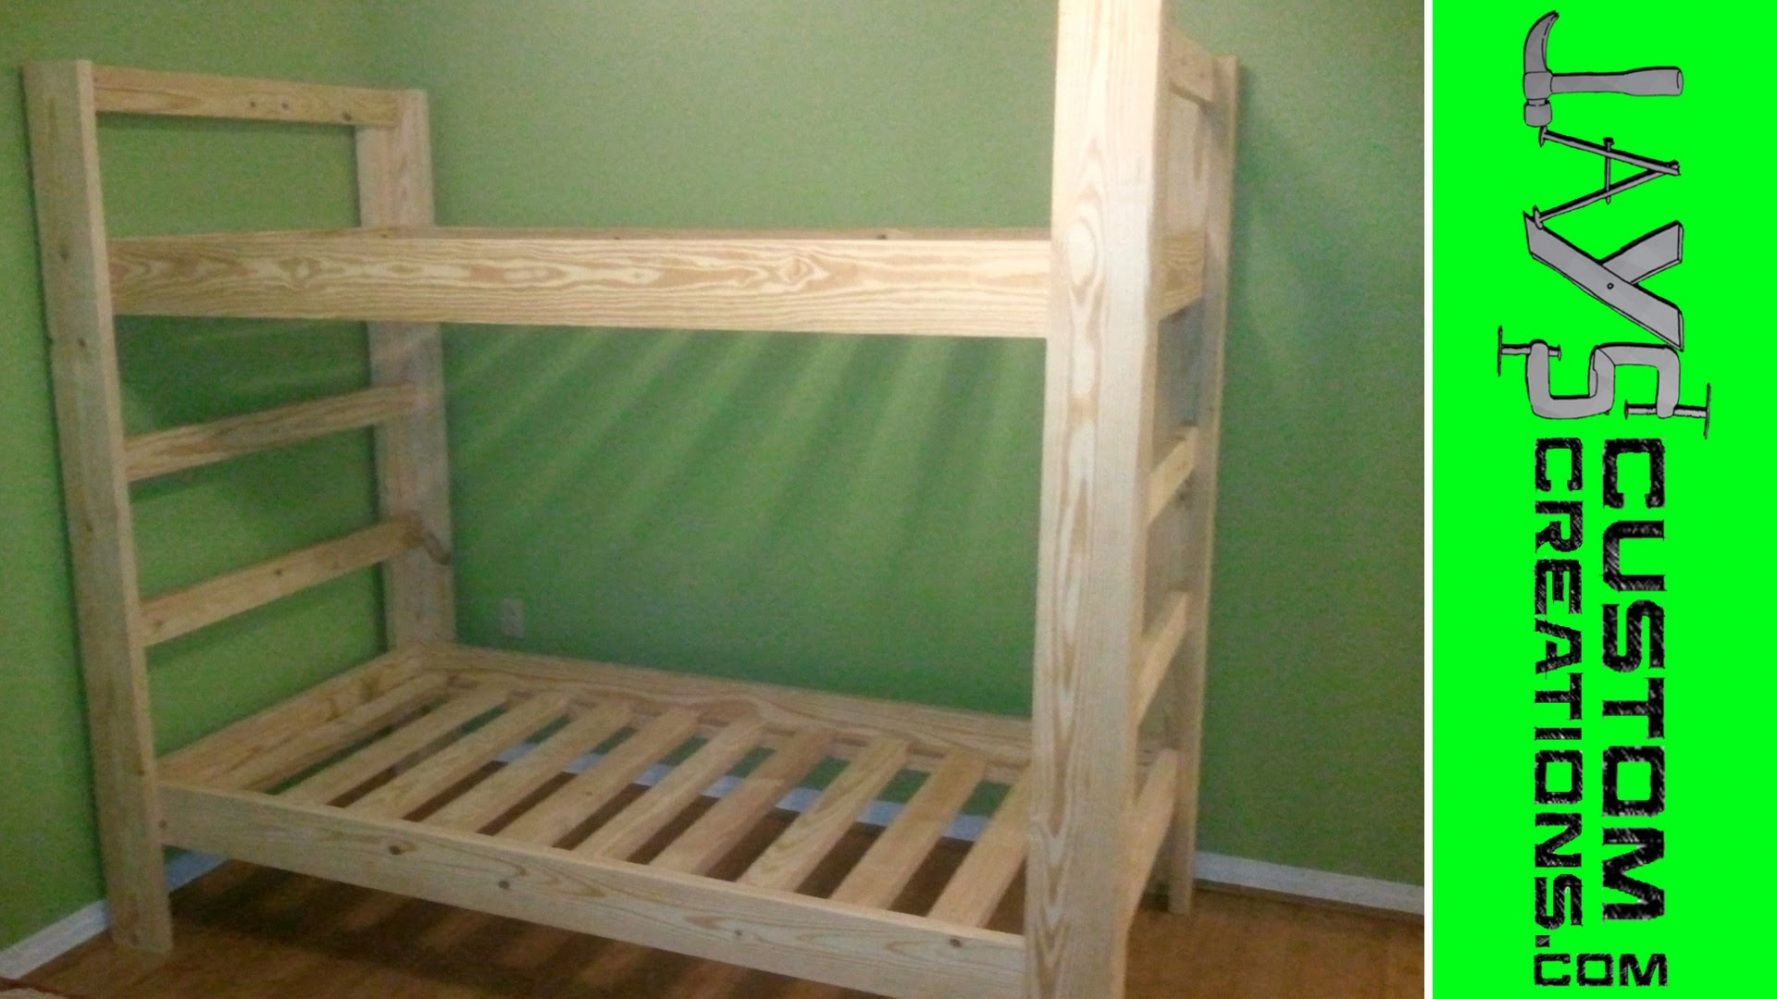 Pin By Neby On Bedroom Apartments Ideas Bunk Bed Plans Bunk Beds